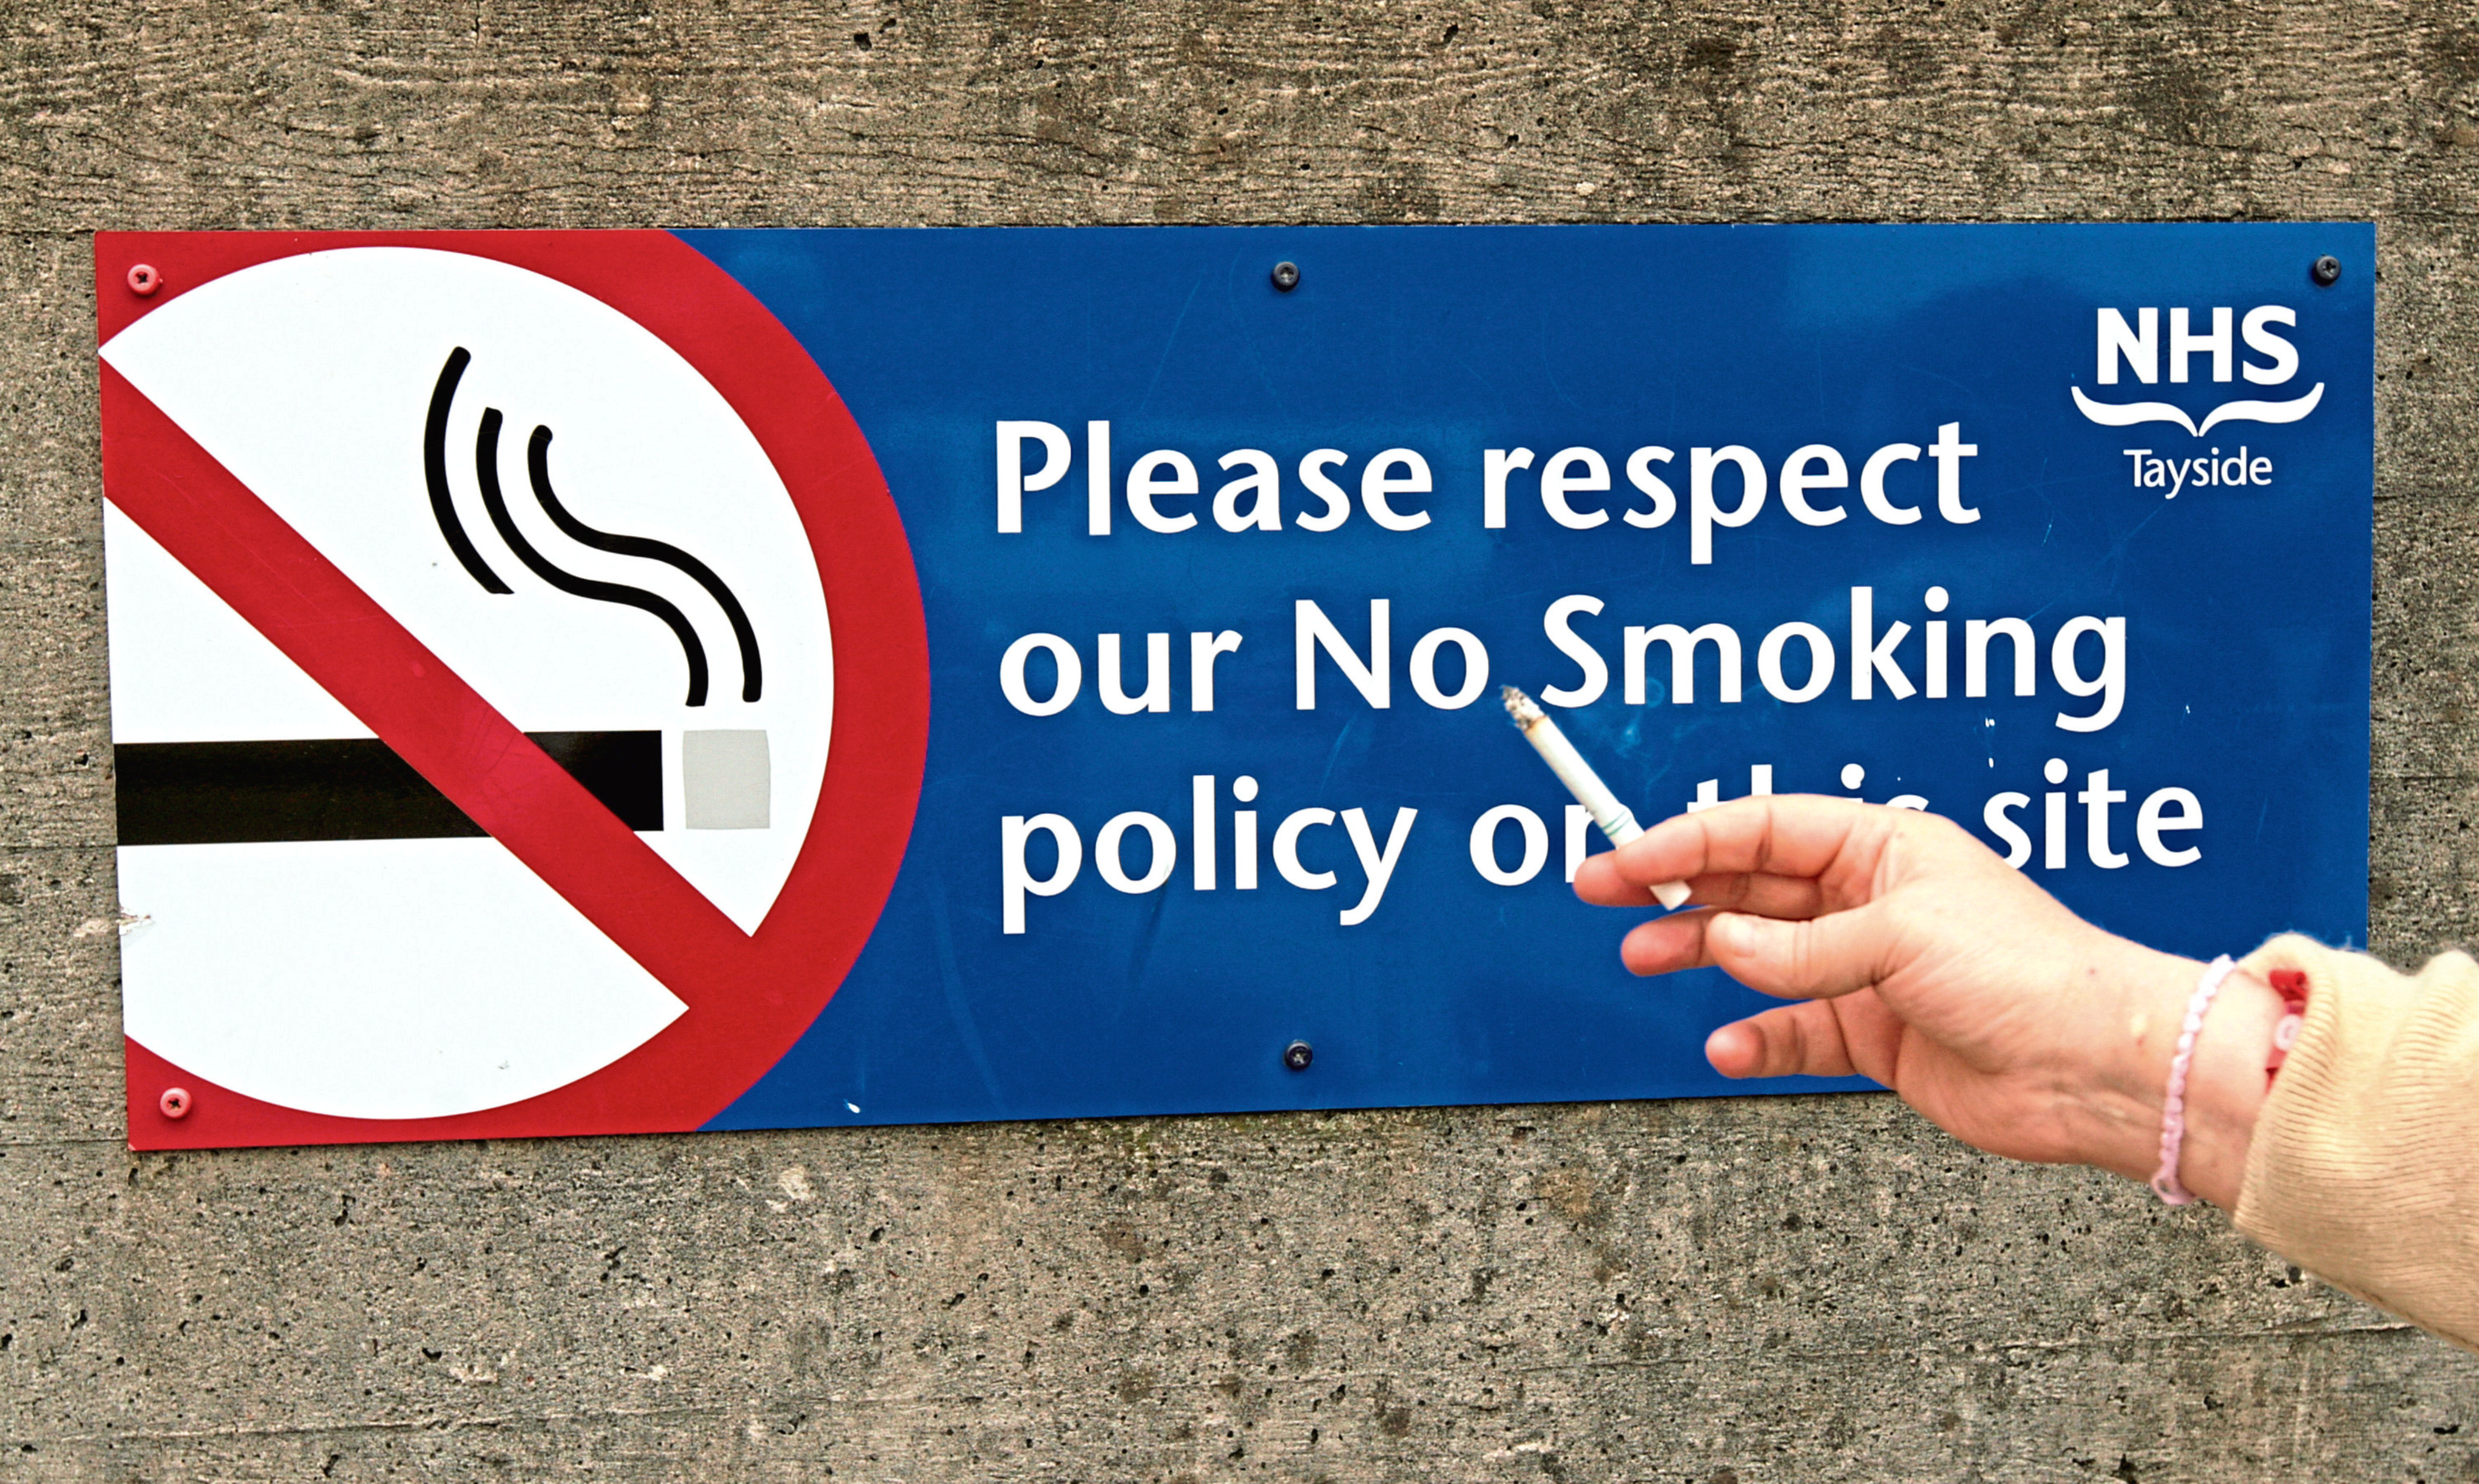 NHS Tayside sites have been smoke-free for several years